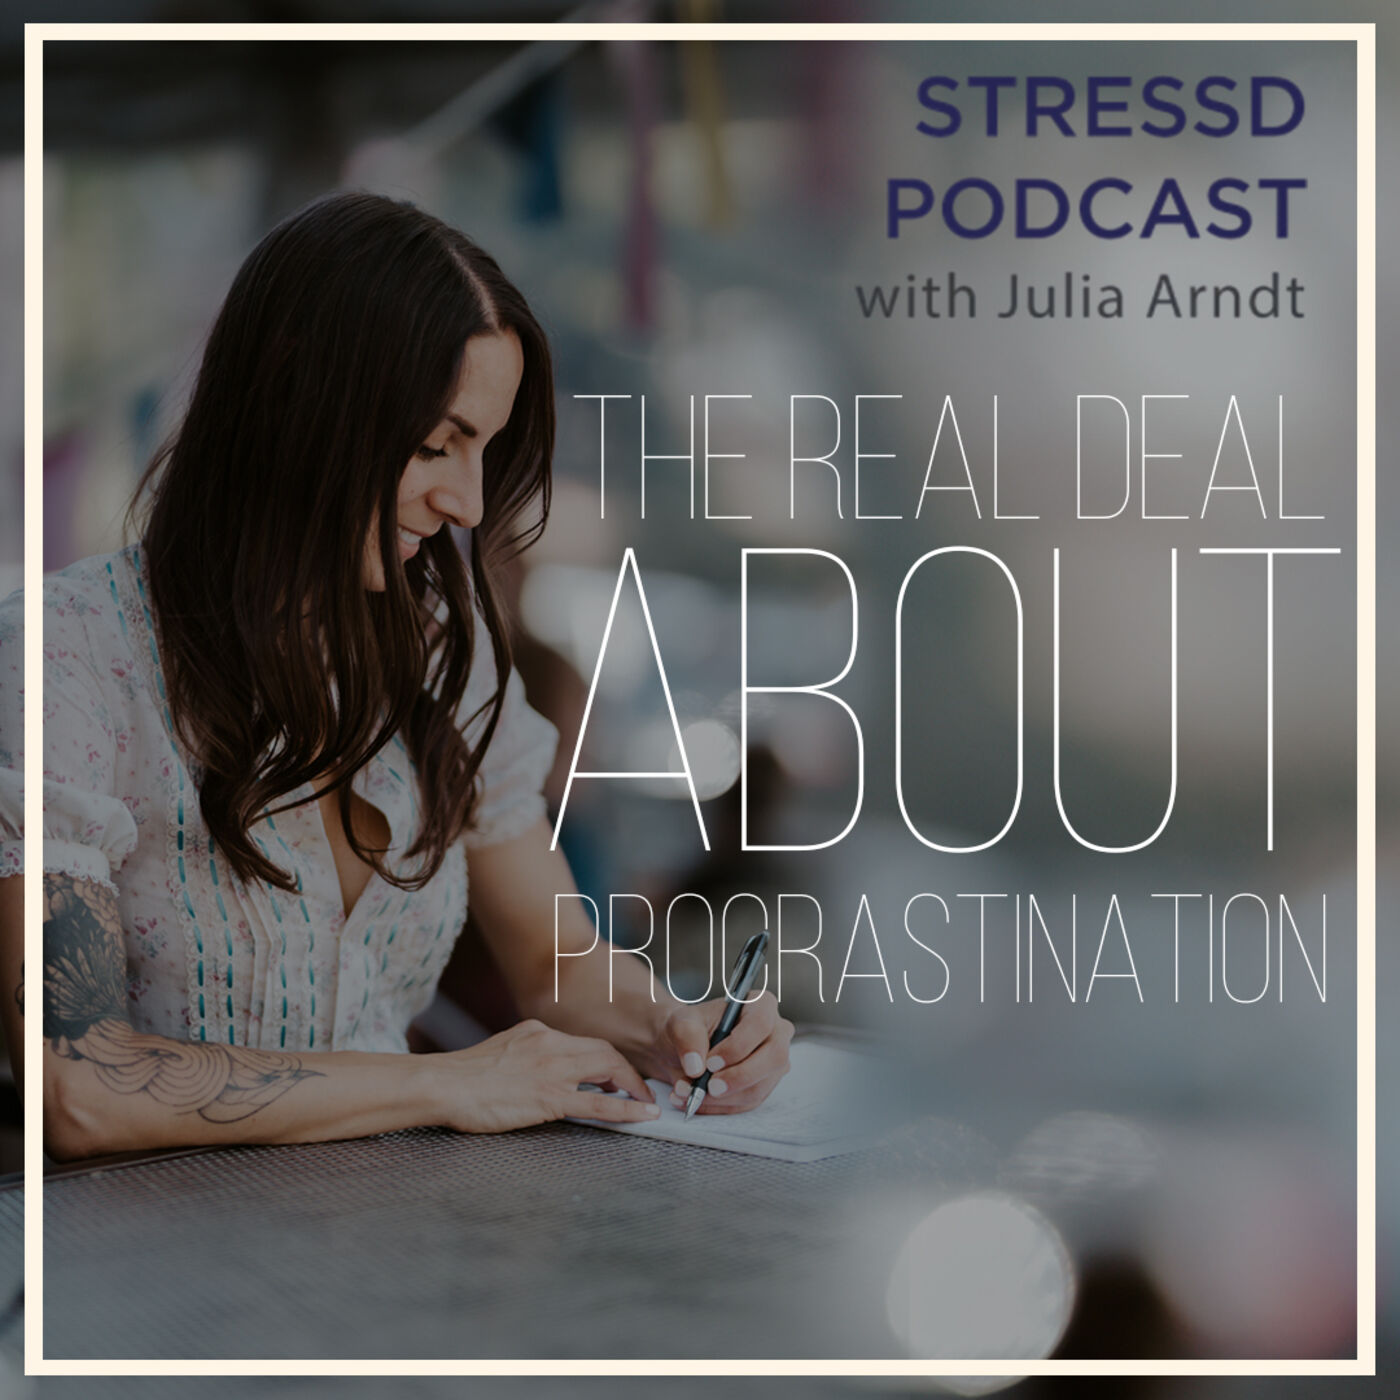 The Real Deal About Procrastination [INTERVIEW]